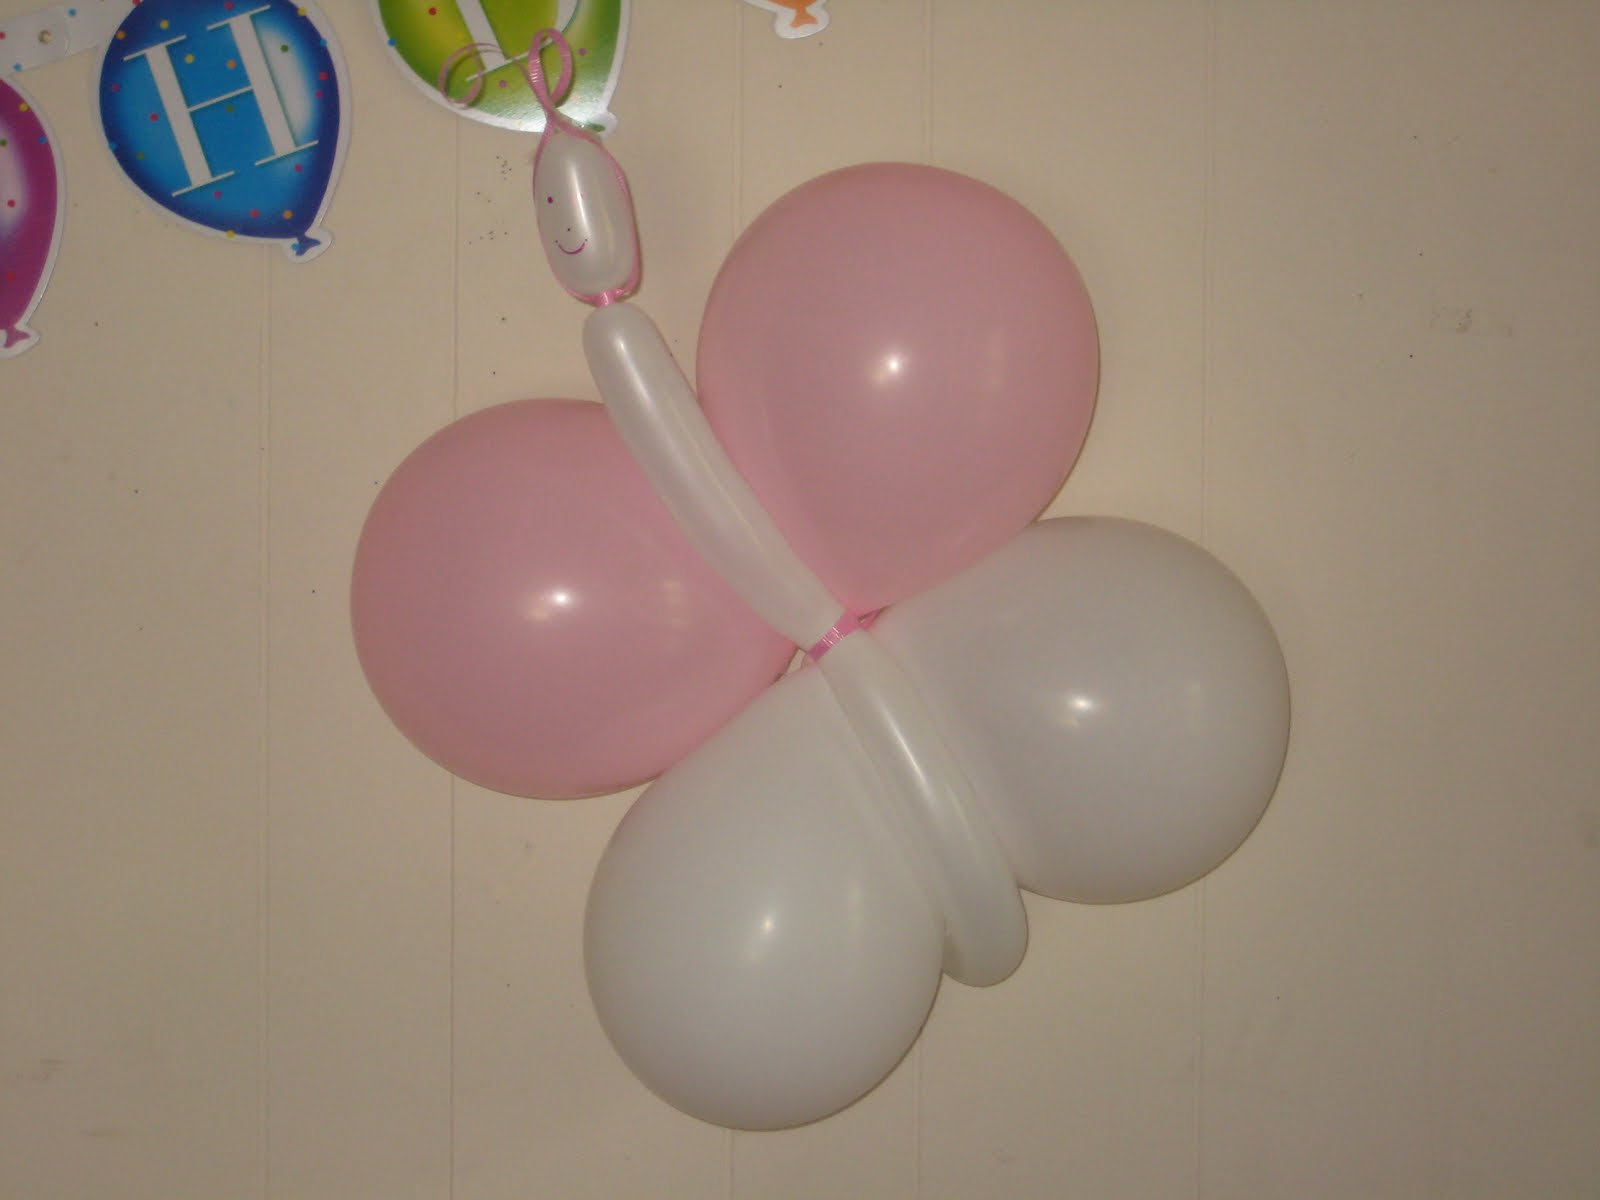 My Avocations: Balloon decoration